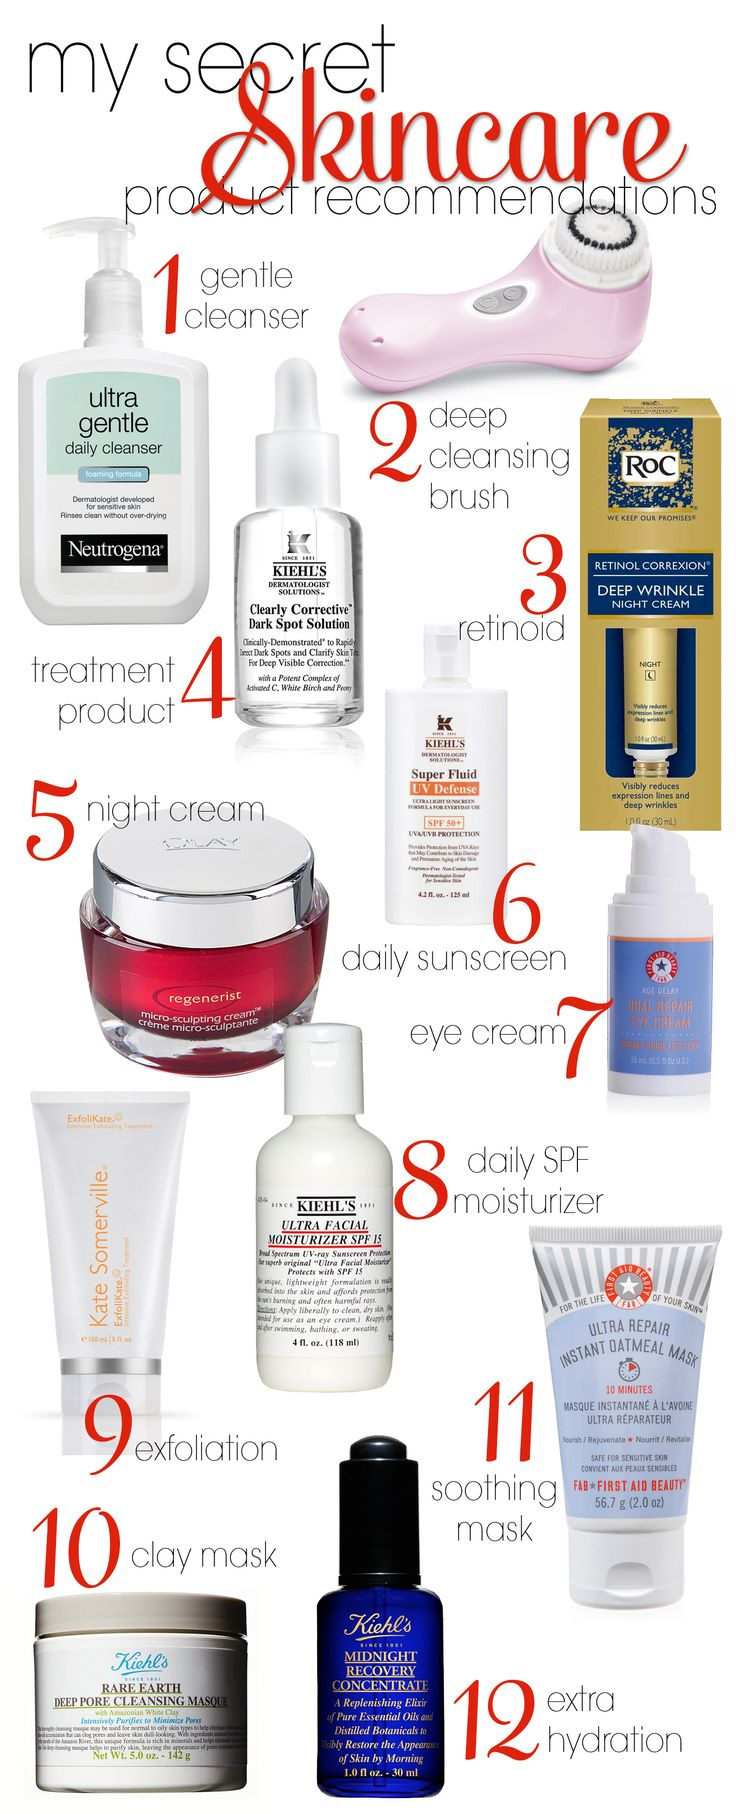 My Skincare Product Recommendations Readers Don't See via @15 Minute Beauty